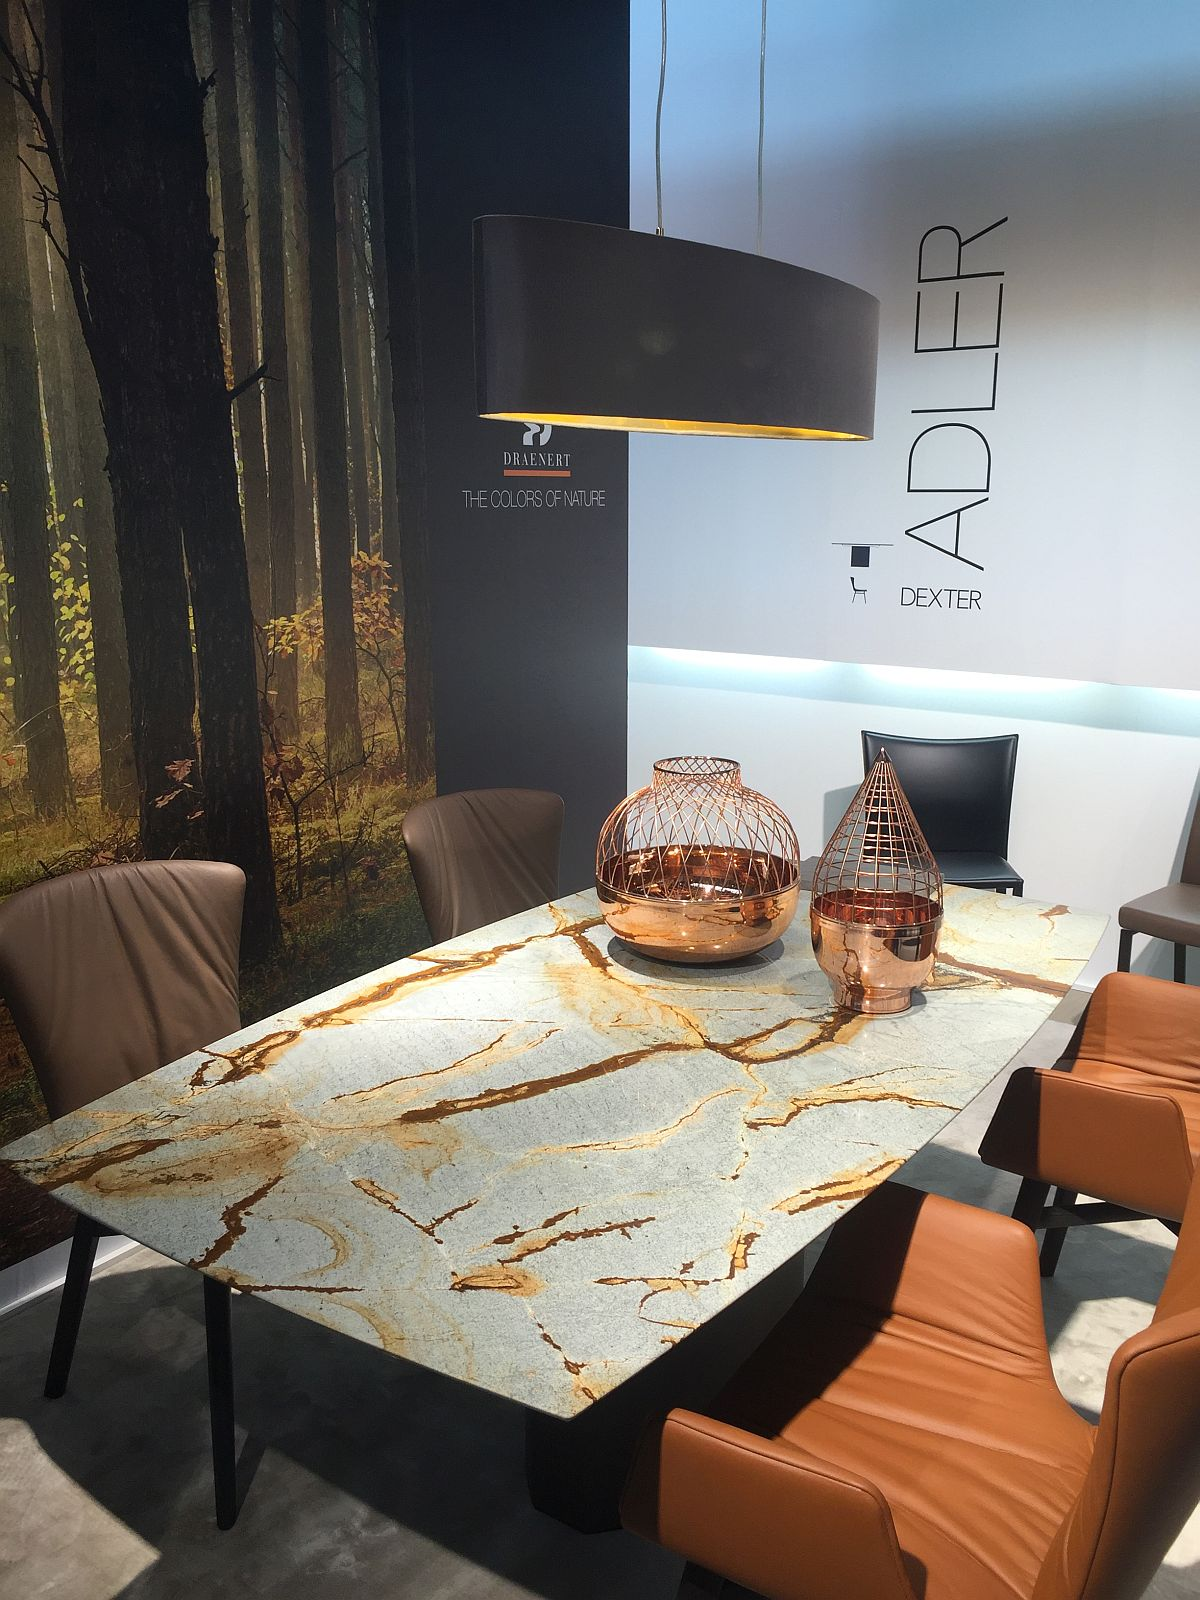 Awesome Adler dining table steals the show with its natural stone top – Draenert at Milan 2016